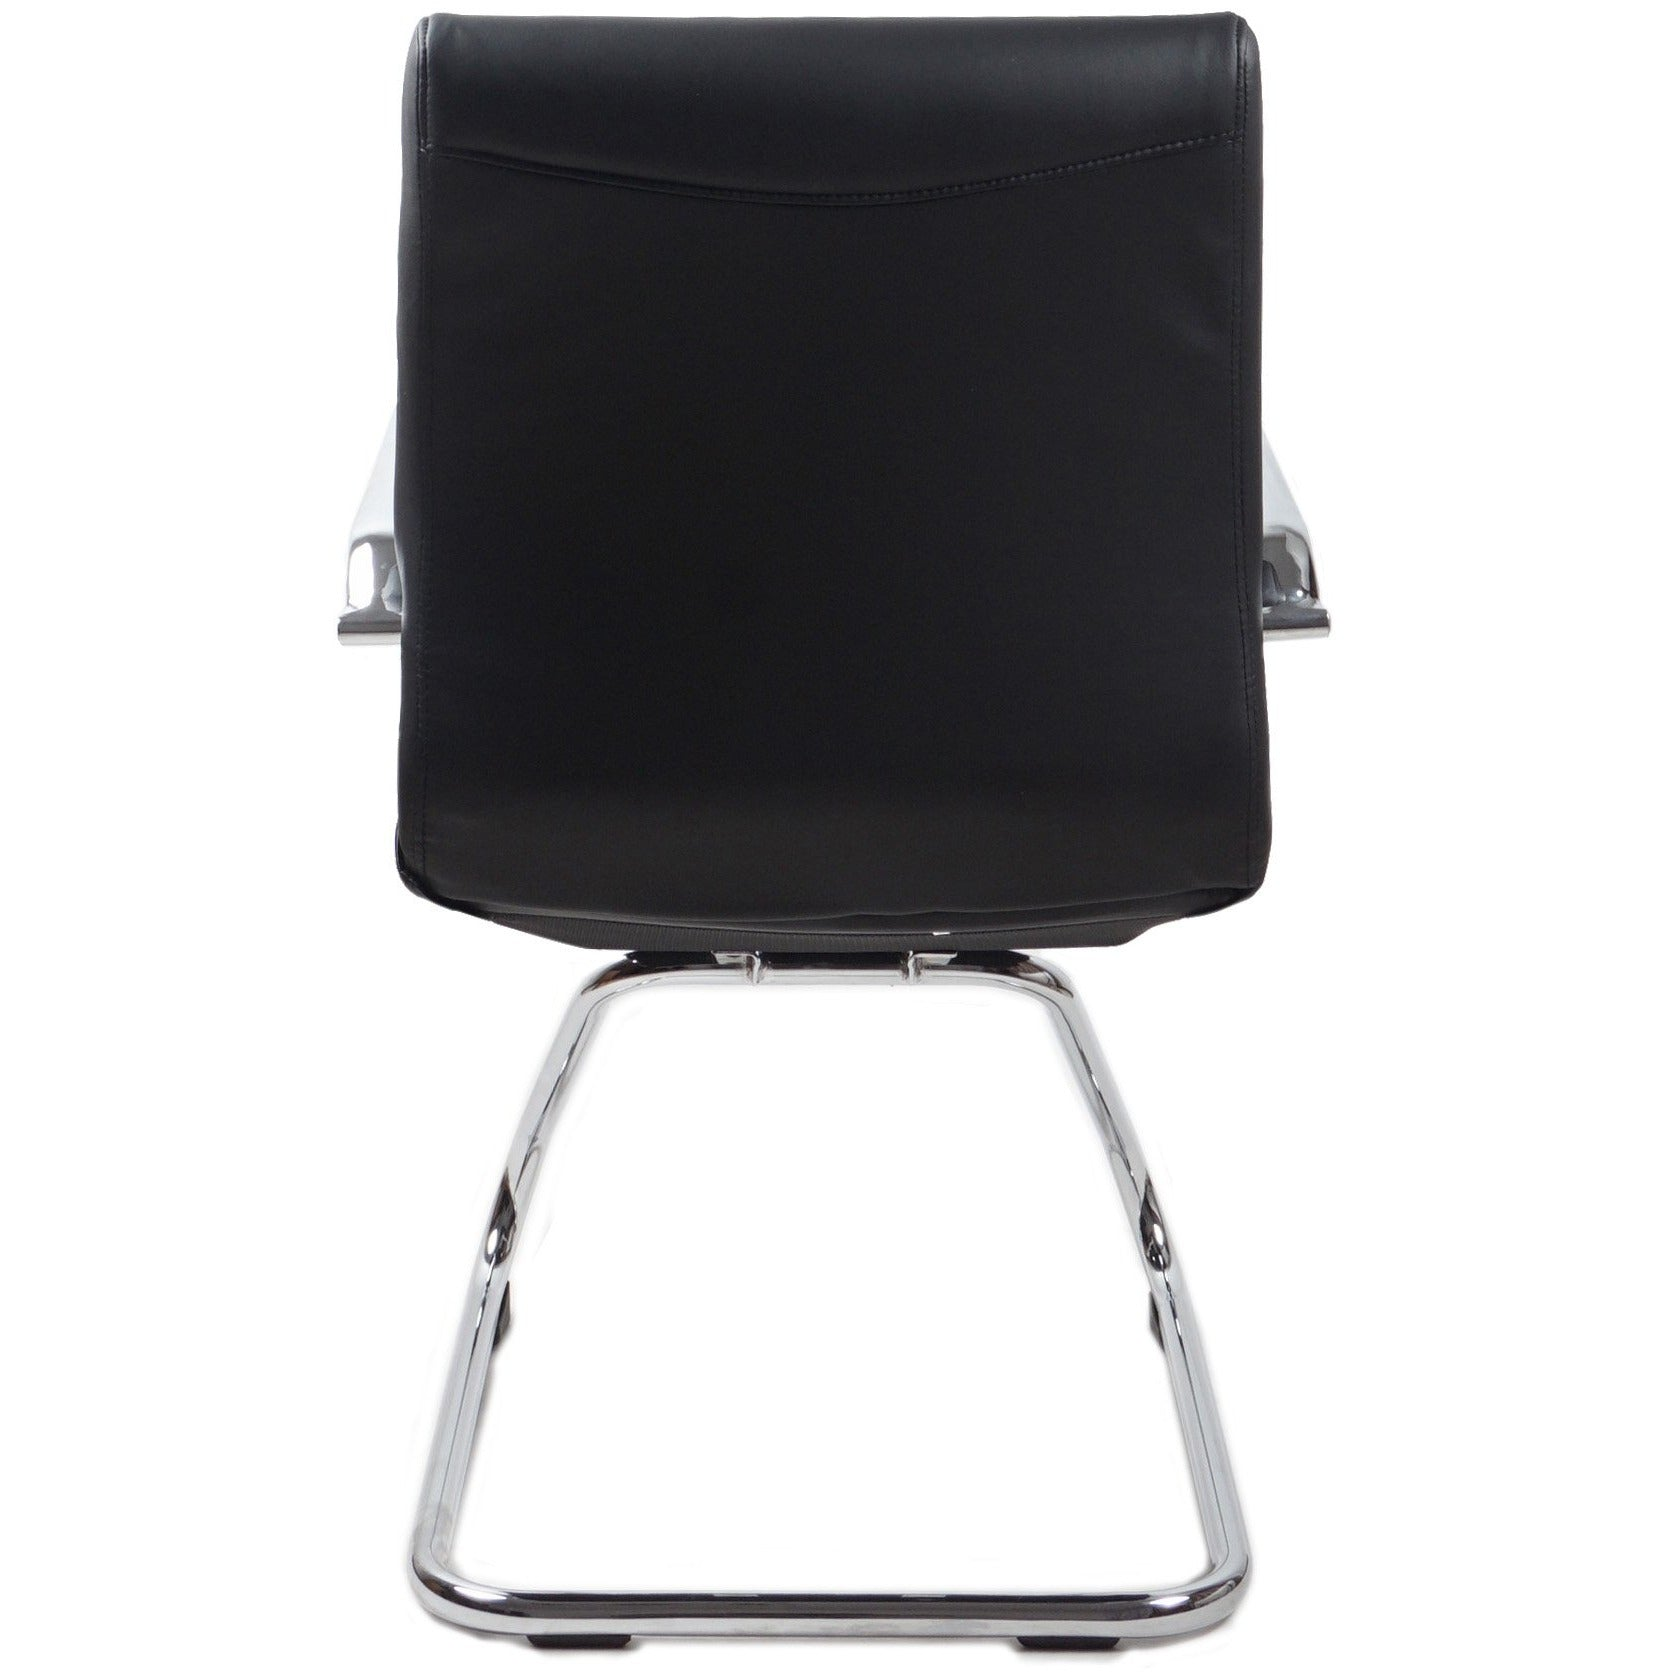 RealBiz II Modern Comfort Series Visitor LeatherPro Chair, Jet Black